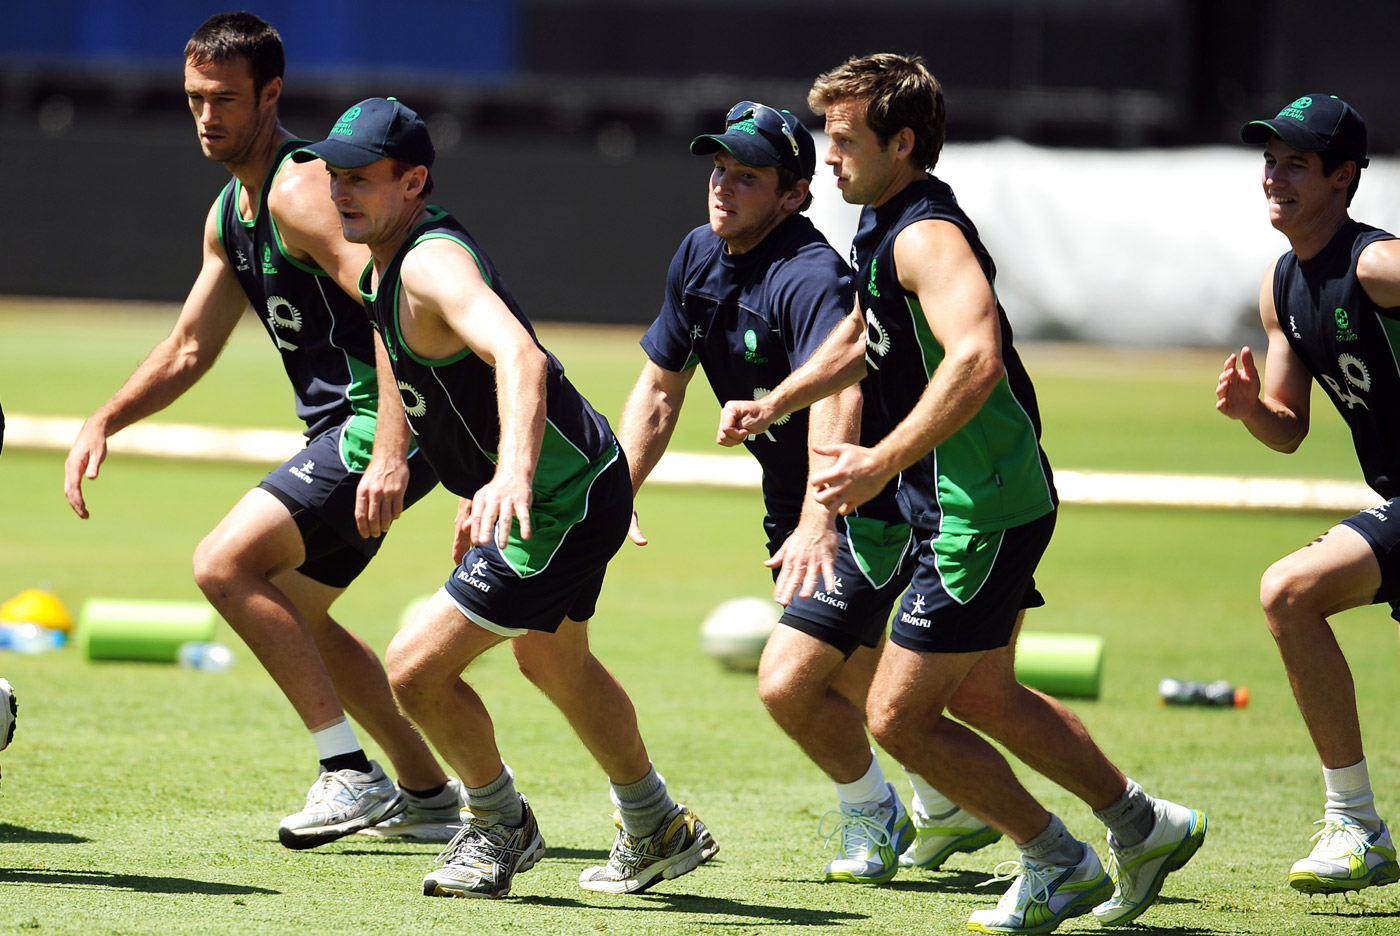 There is growing acceptance for cricket in Ireland despite its English roots